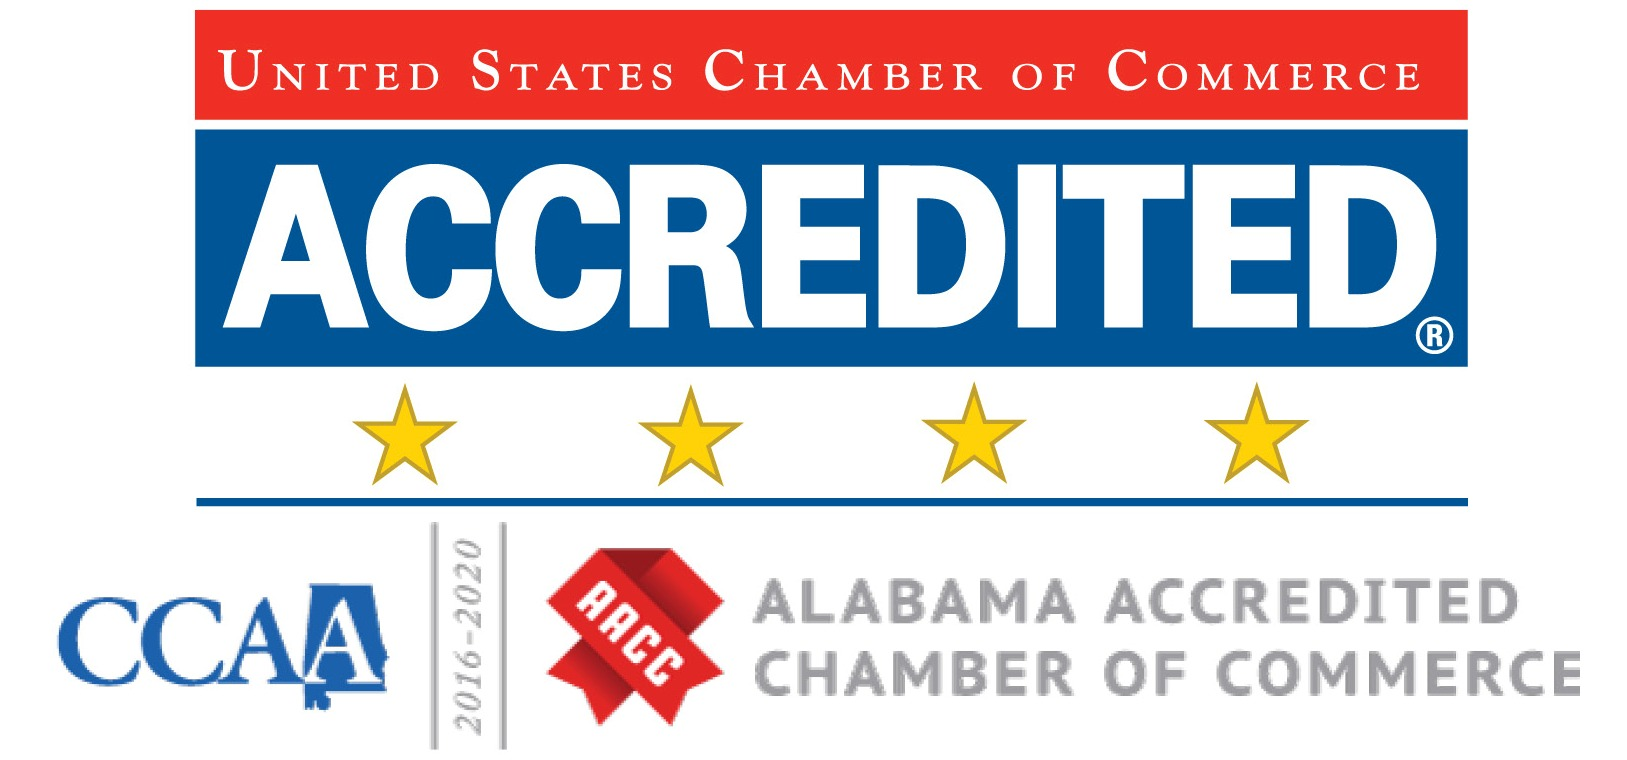 United State Chamber of Commerce Accredited & State Accredited logo